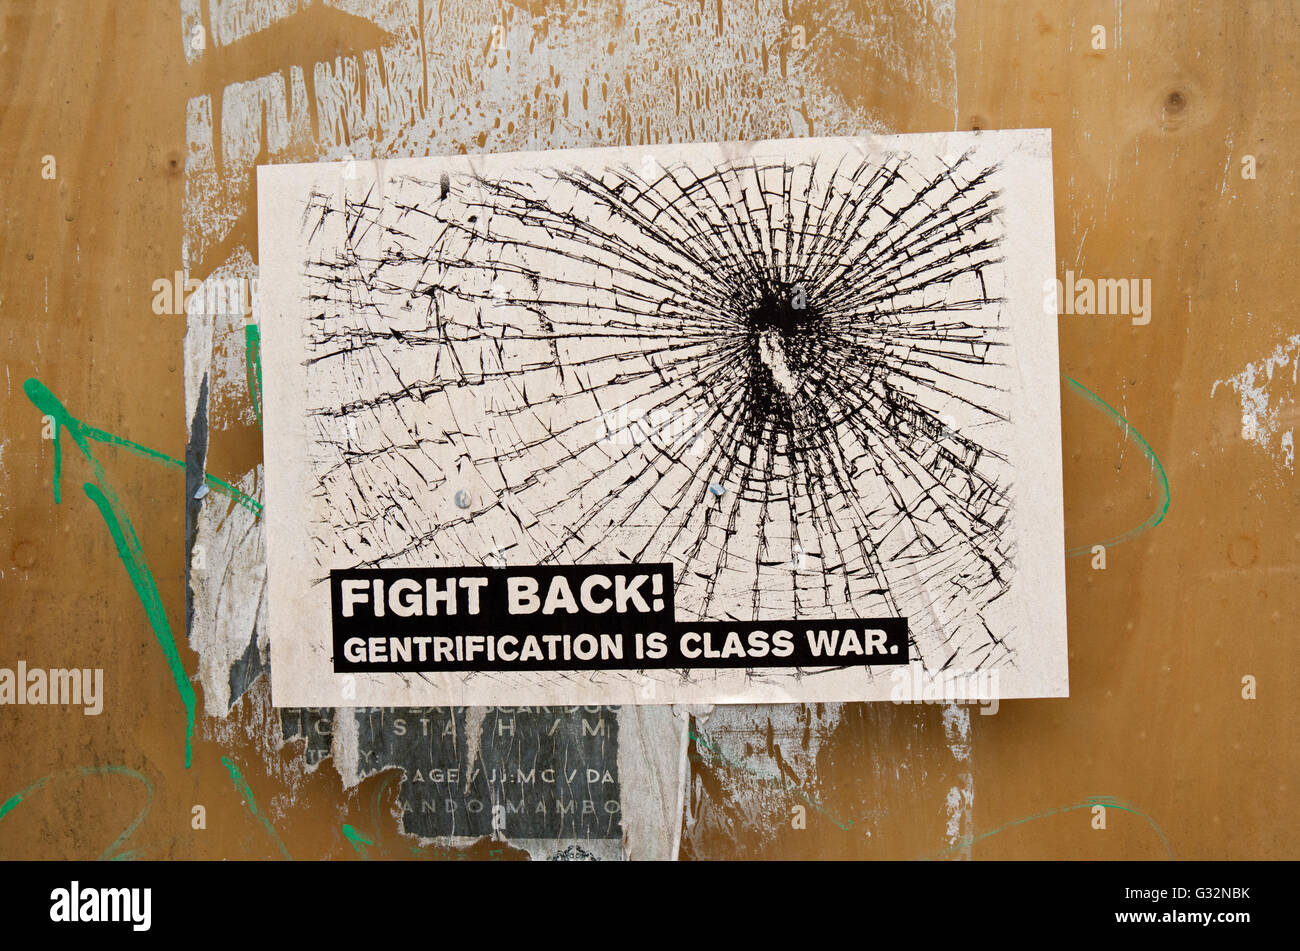 A Class War poster protesting against the gentrification of London. - Stock Image